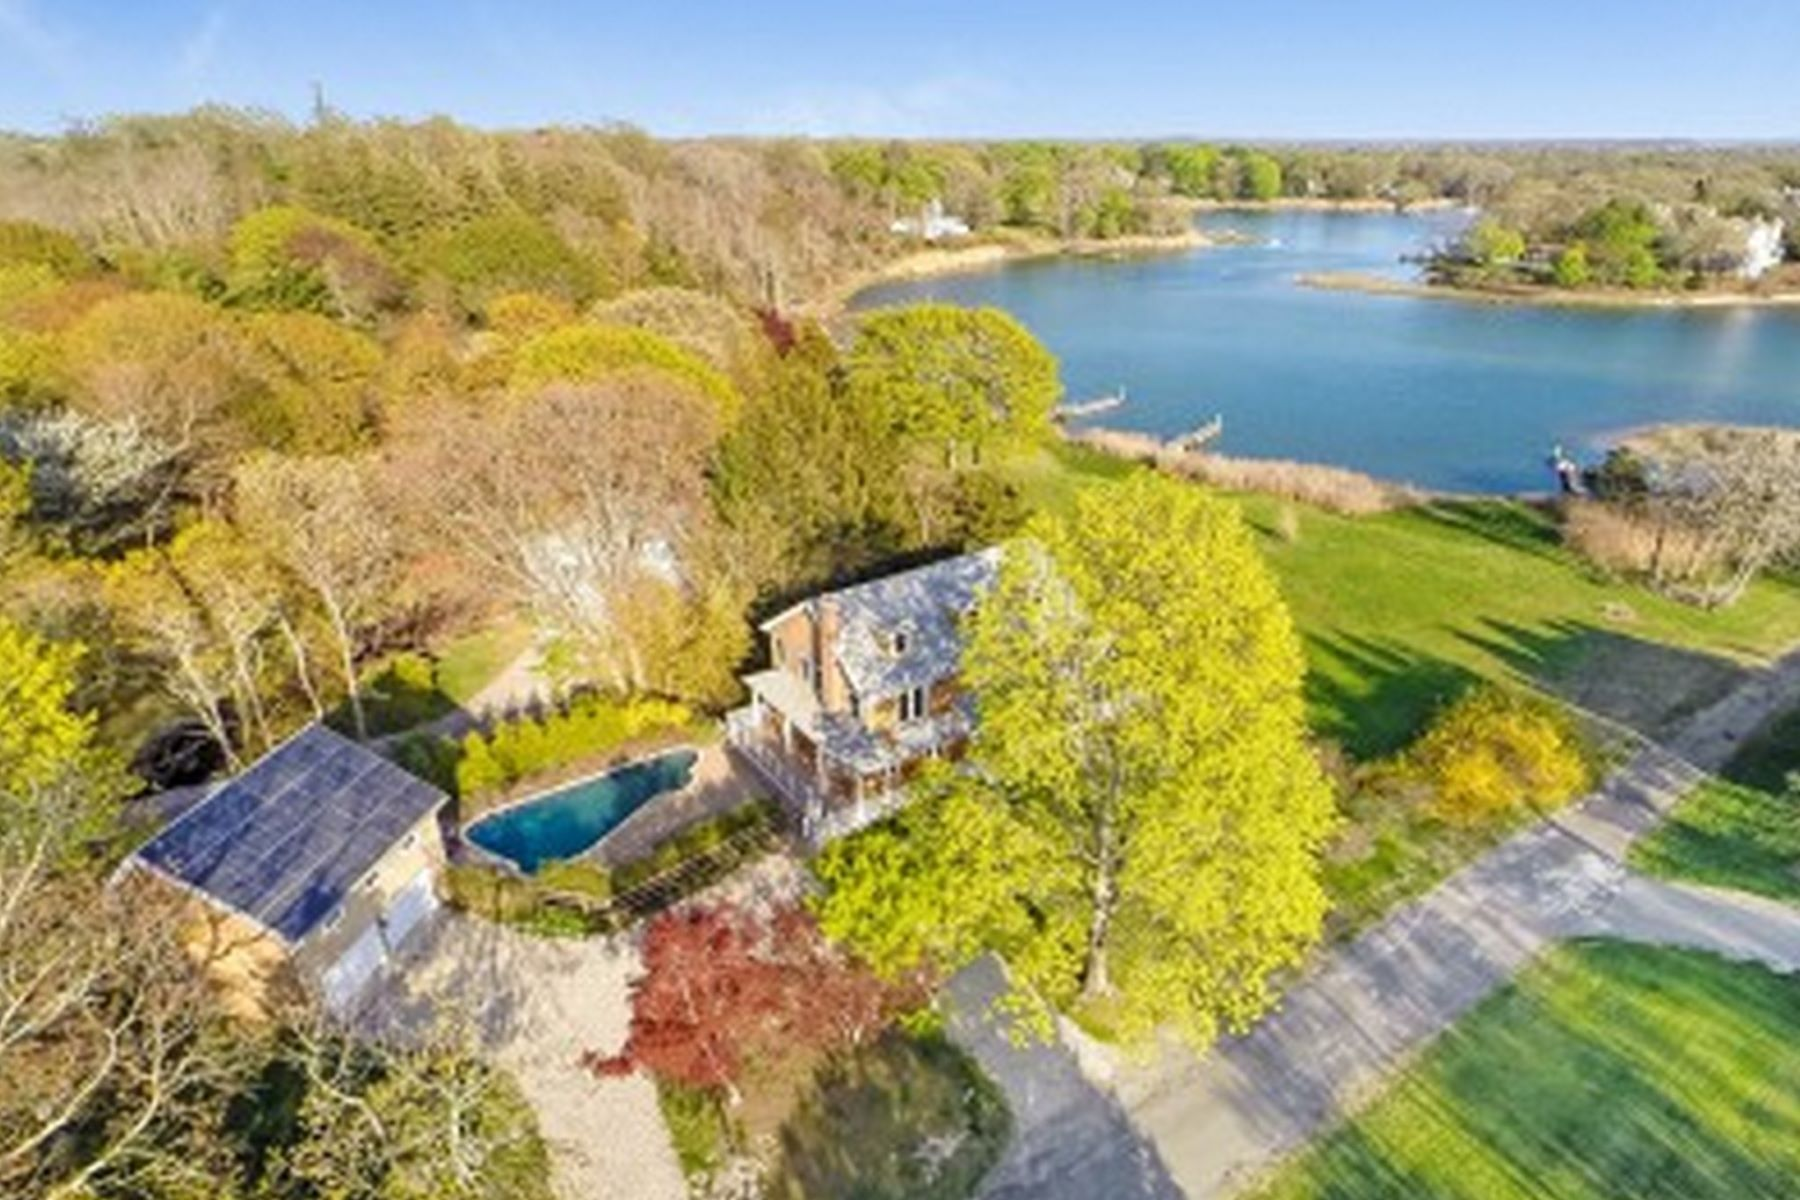 Single Family Home for Active at 1 Landing Lane, Shelter Island, NY 11964 1 Landing Ln Shelter Island, New York 11964 United States